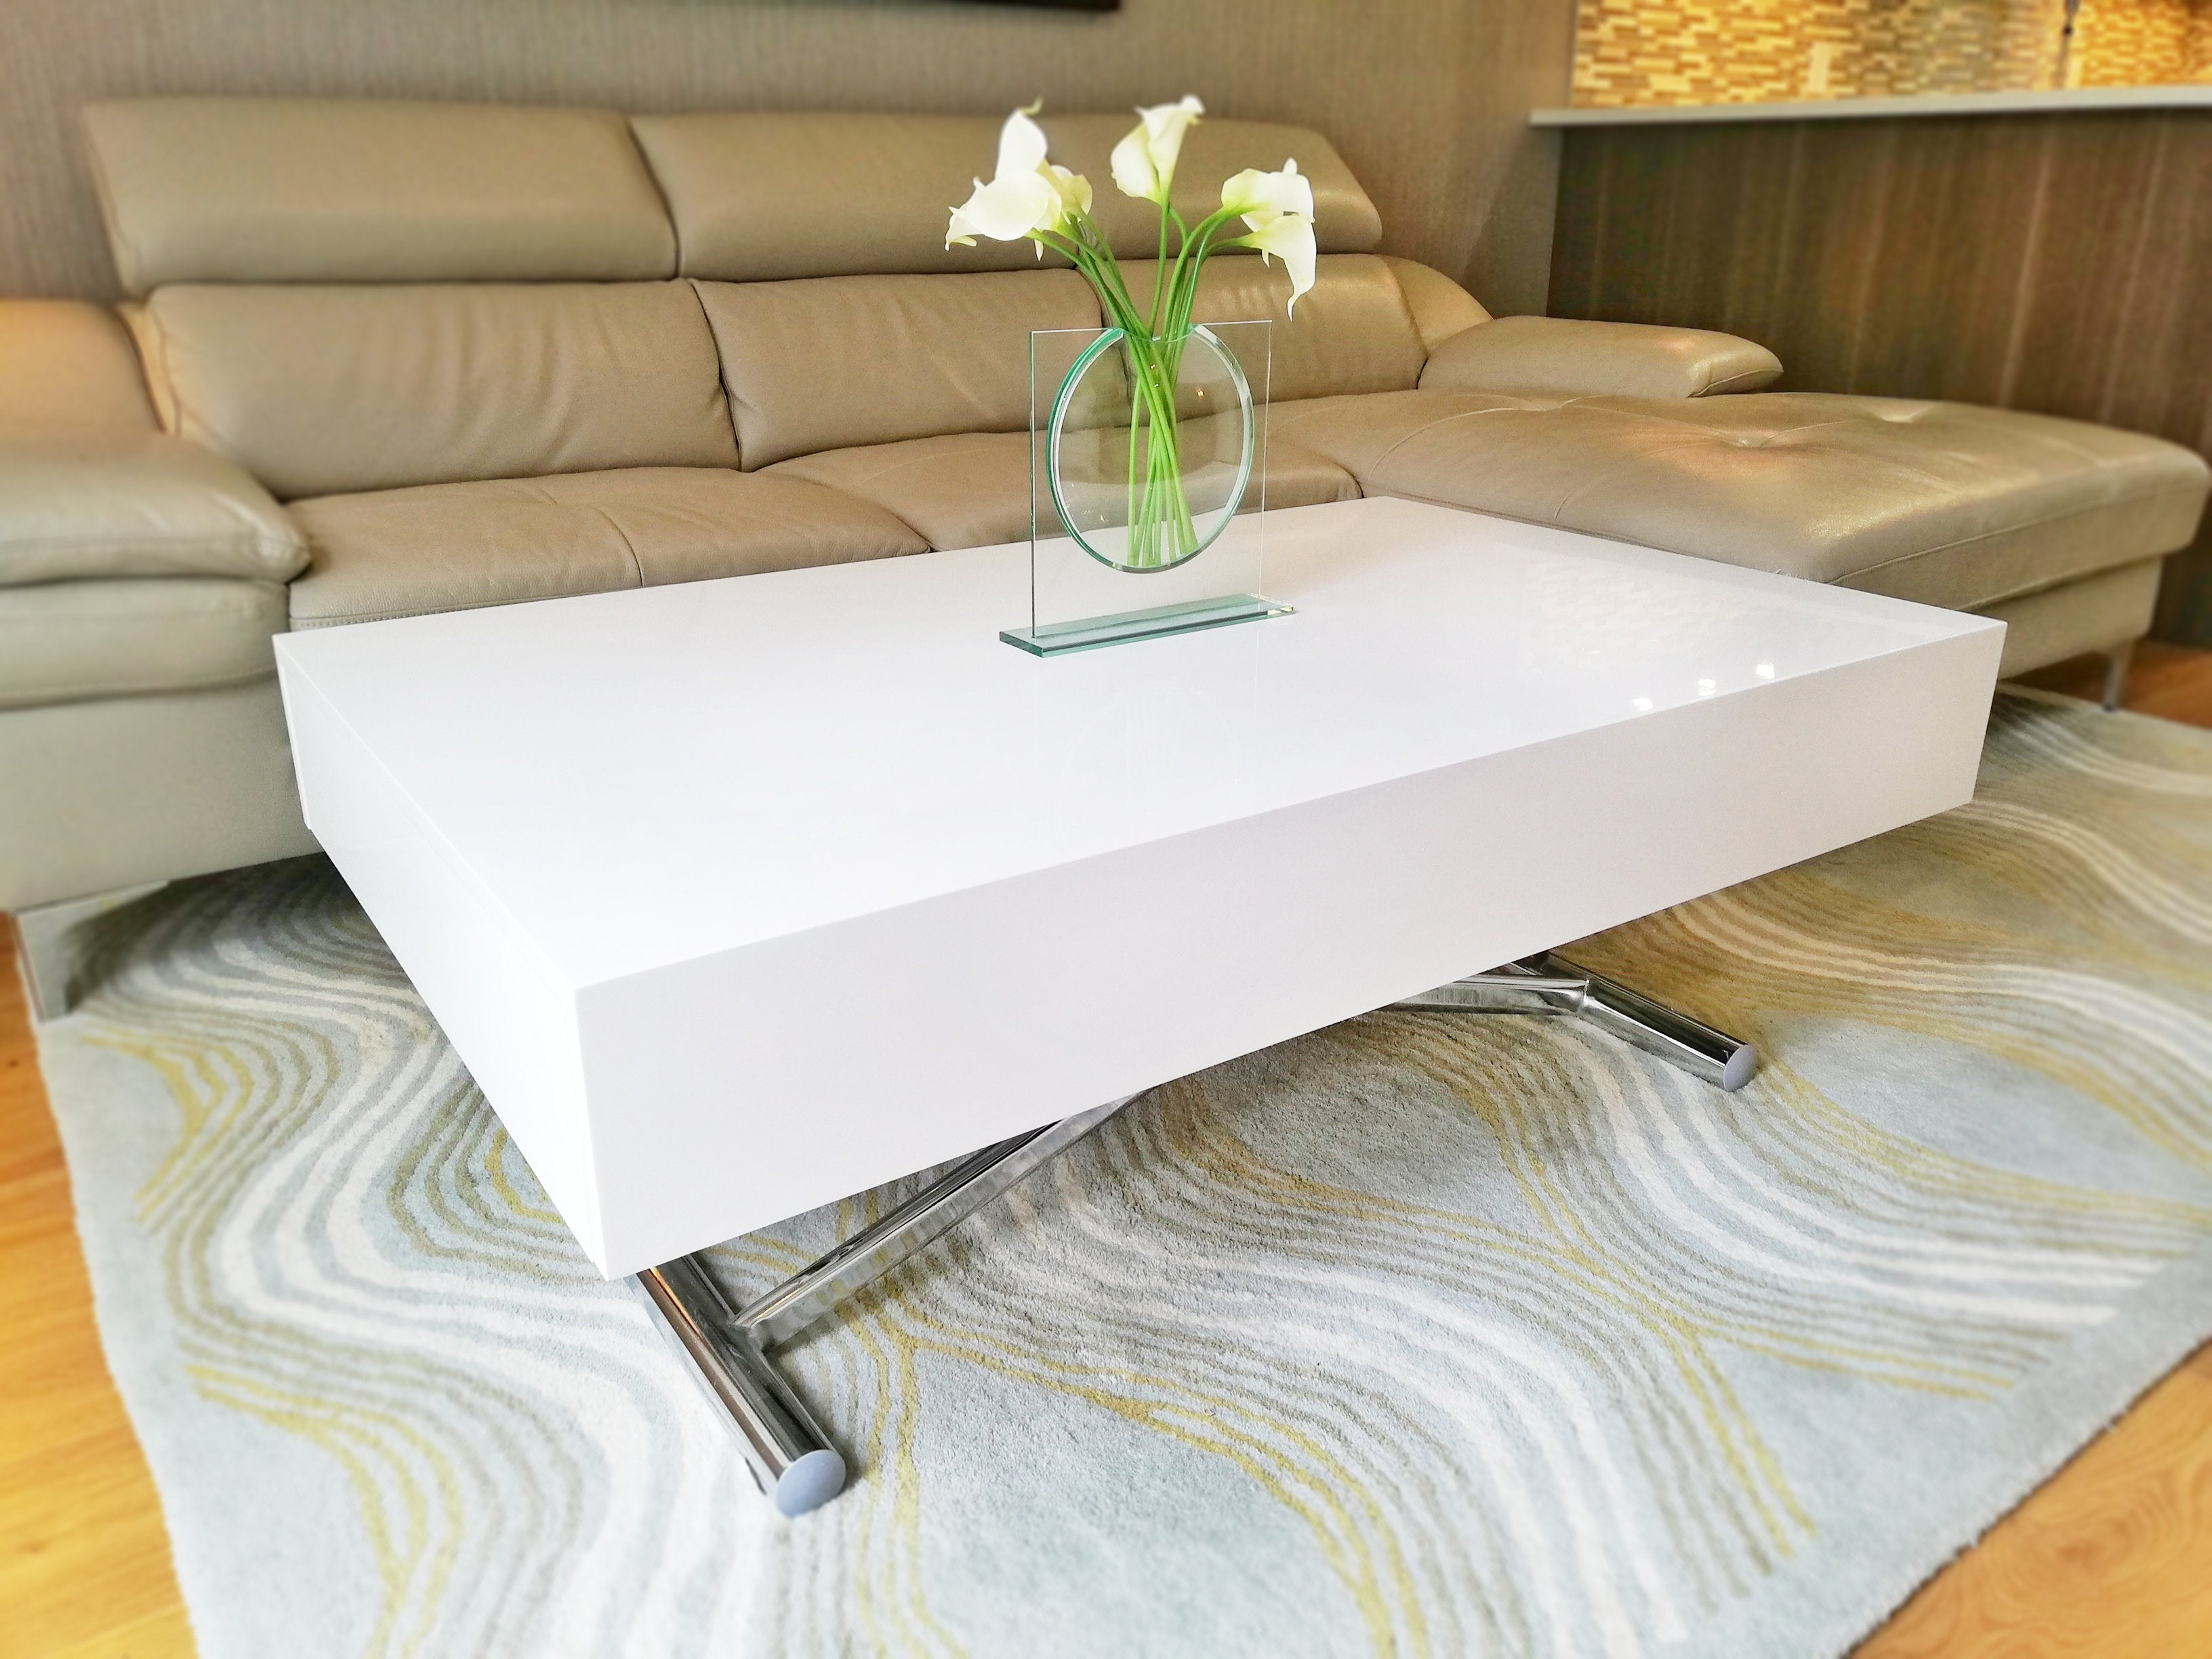 Largenta Expanding Coffee Table That Converts To Dining Seats 8